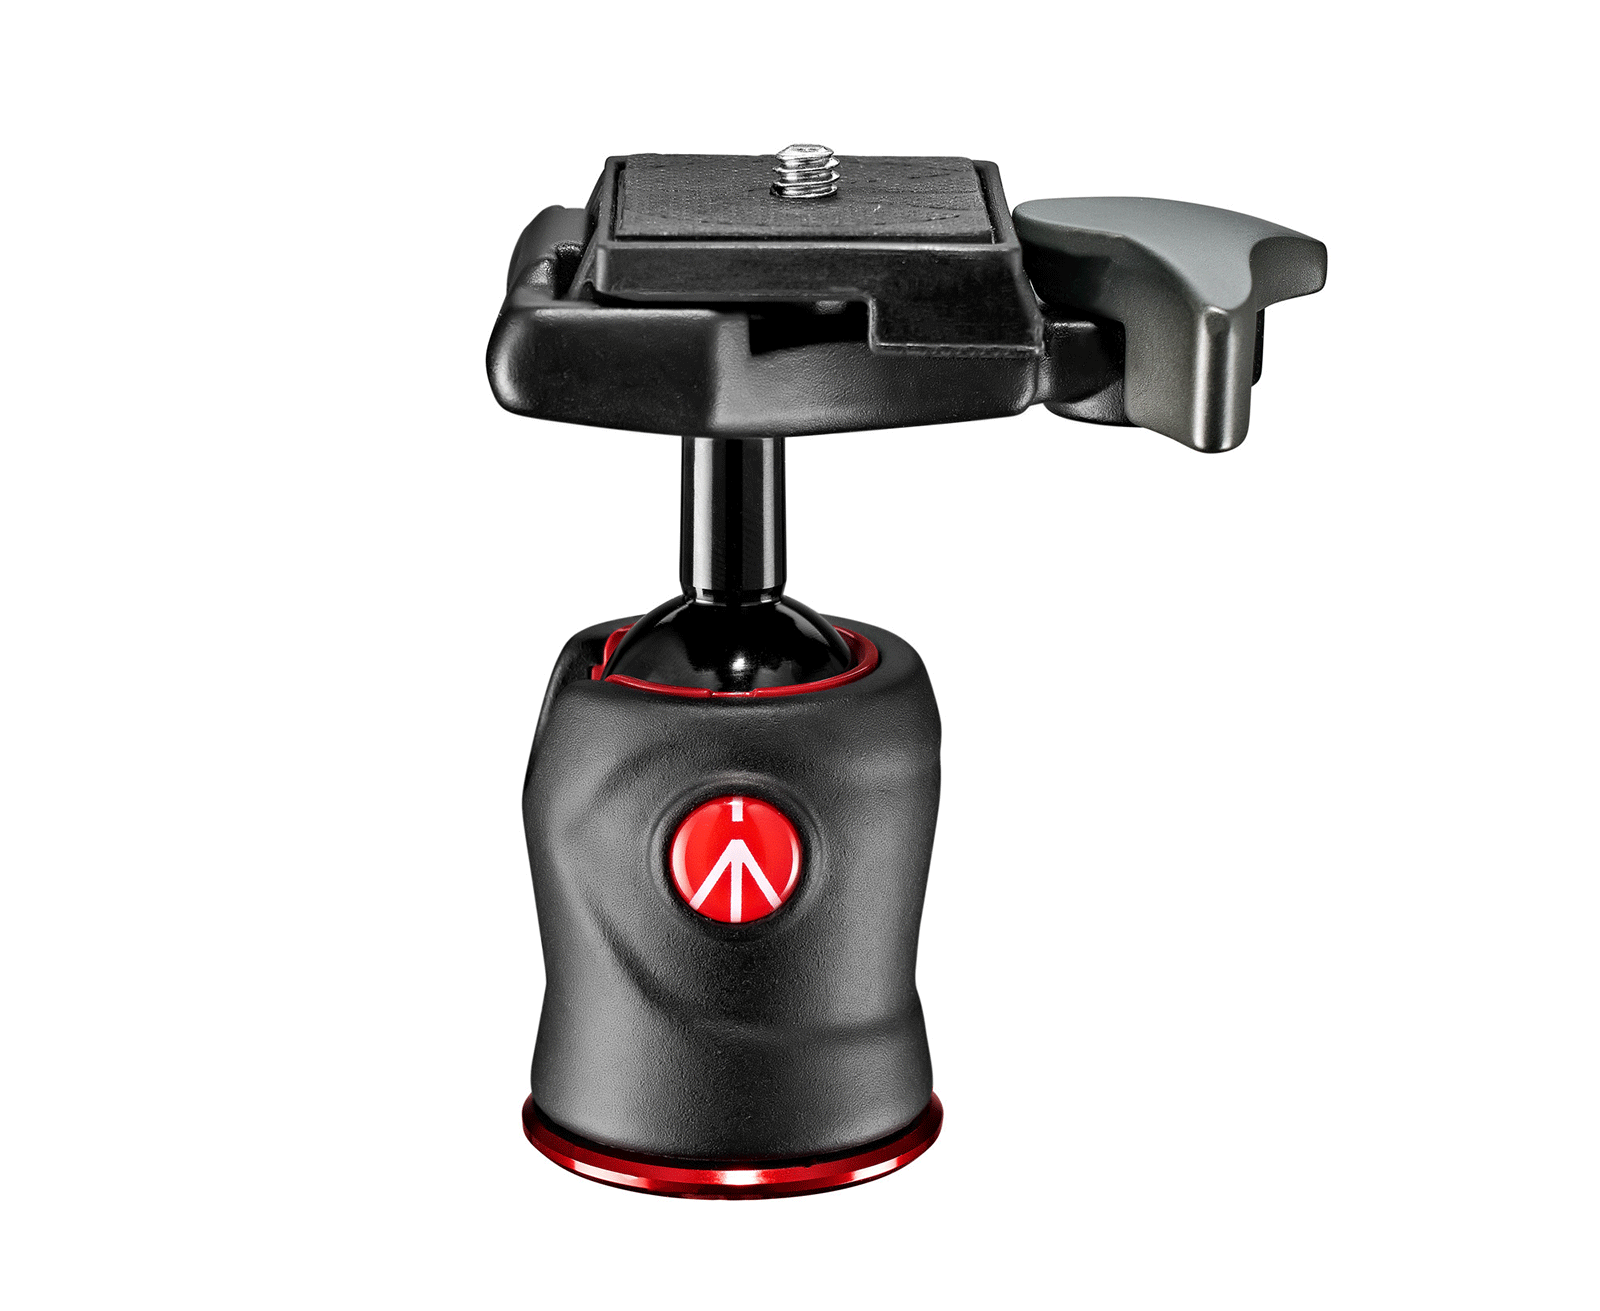 Manfrotto 490 Centre Ball Head